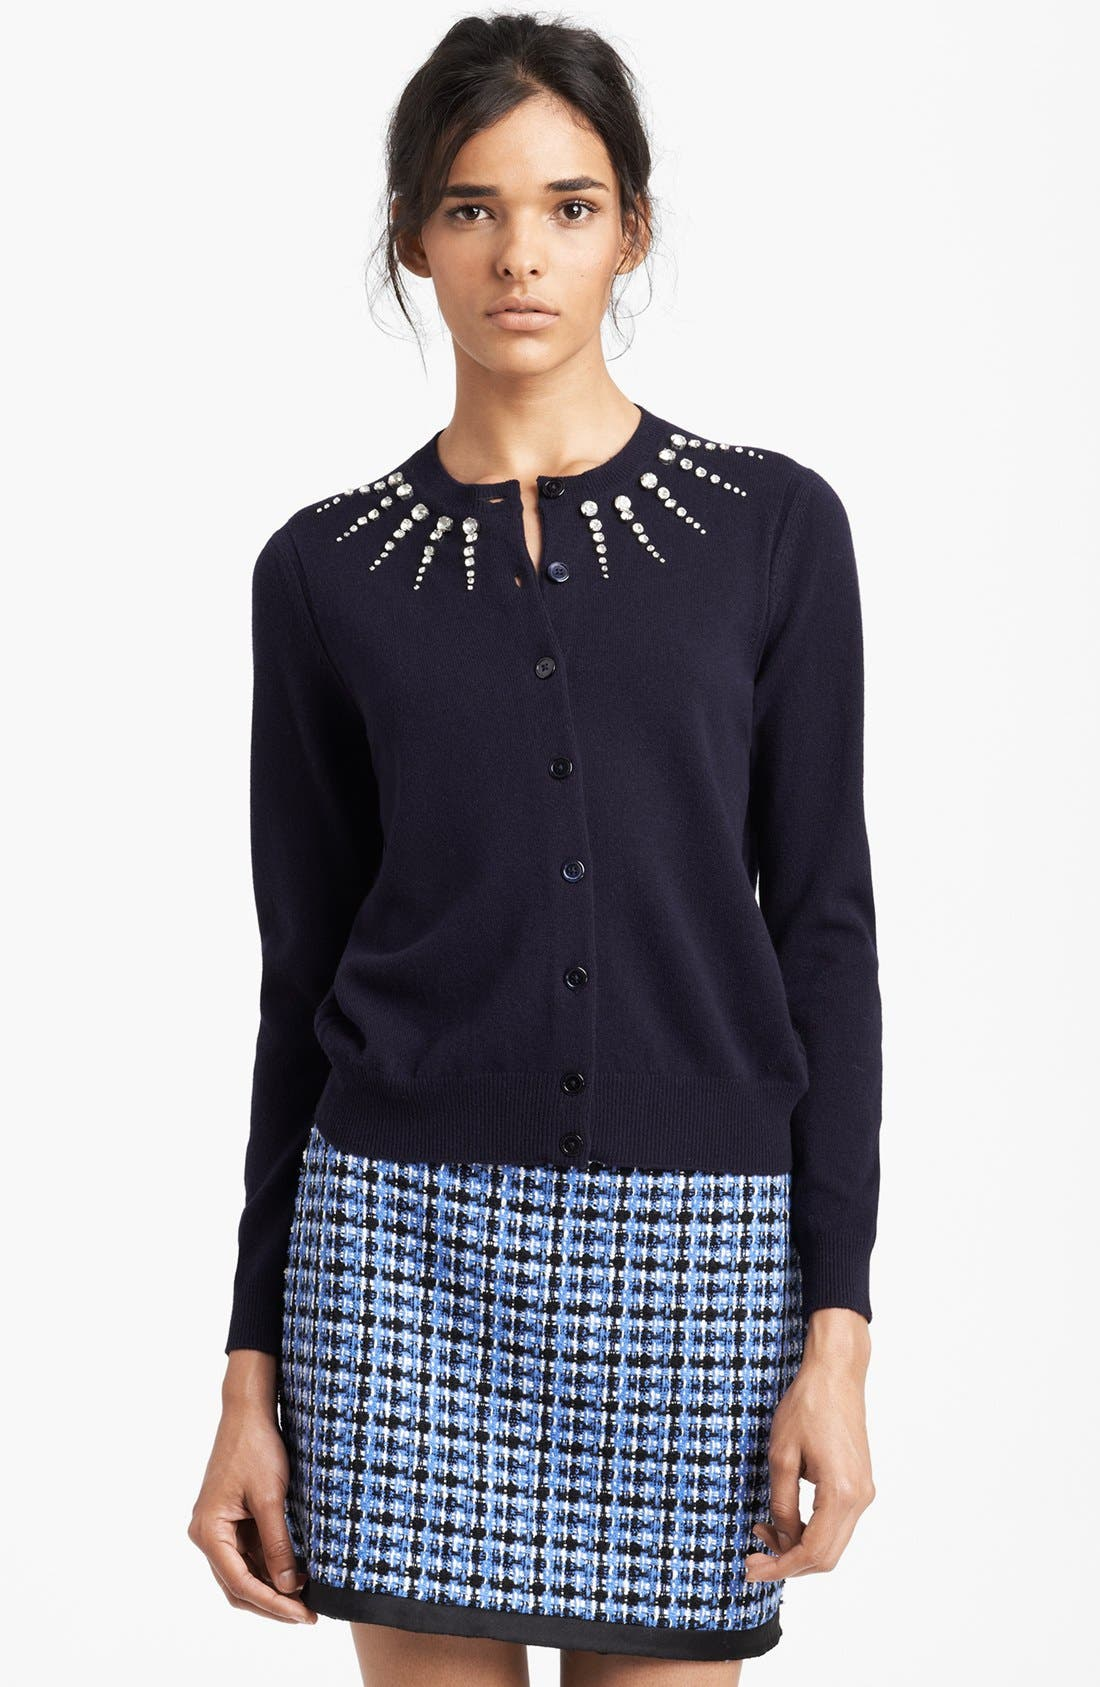 Alternate Image 1 Selected - MARC JACOBS Jewel Embroidered Cardigan